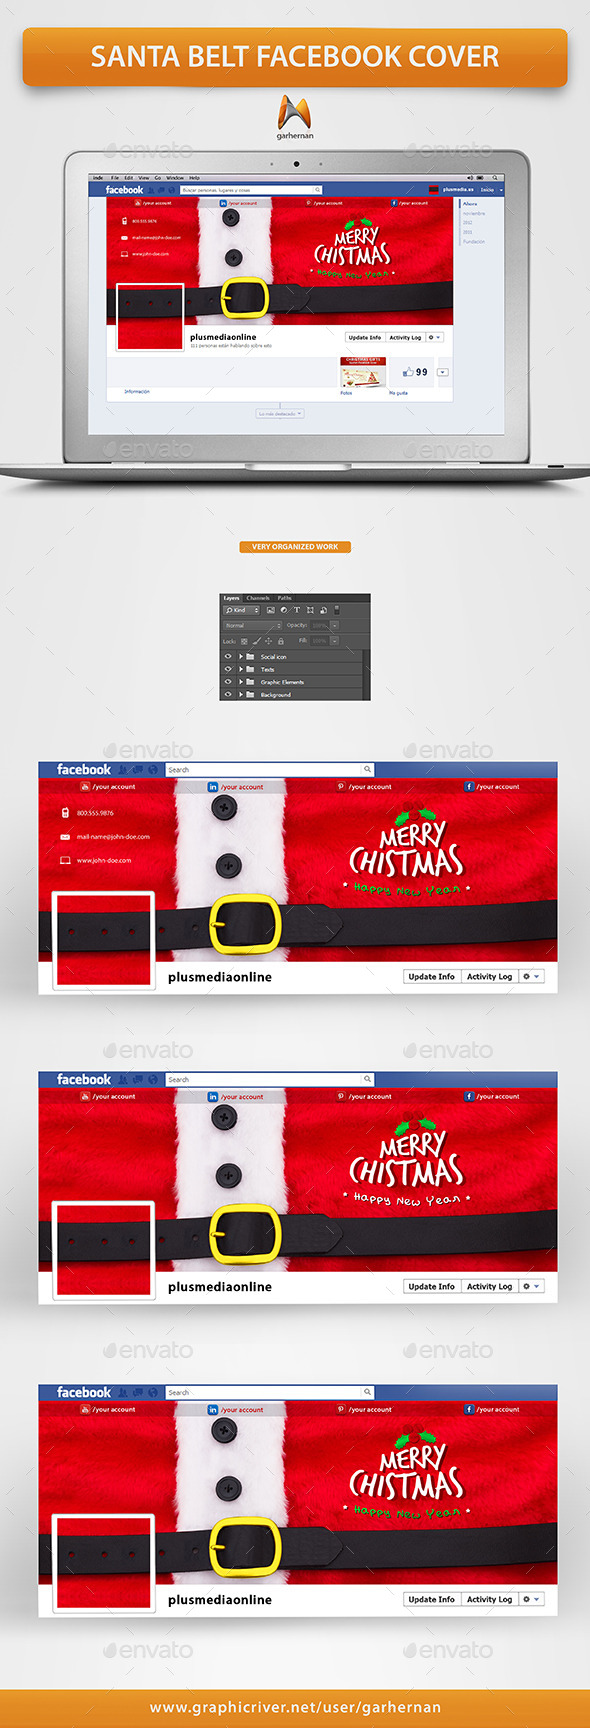 GraphicRiver Santa Claus Belt Facebook Cover 9742359